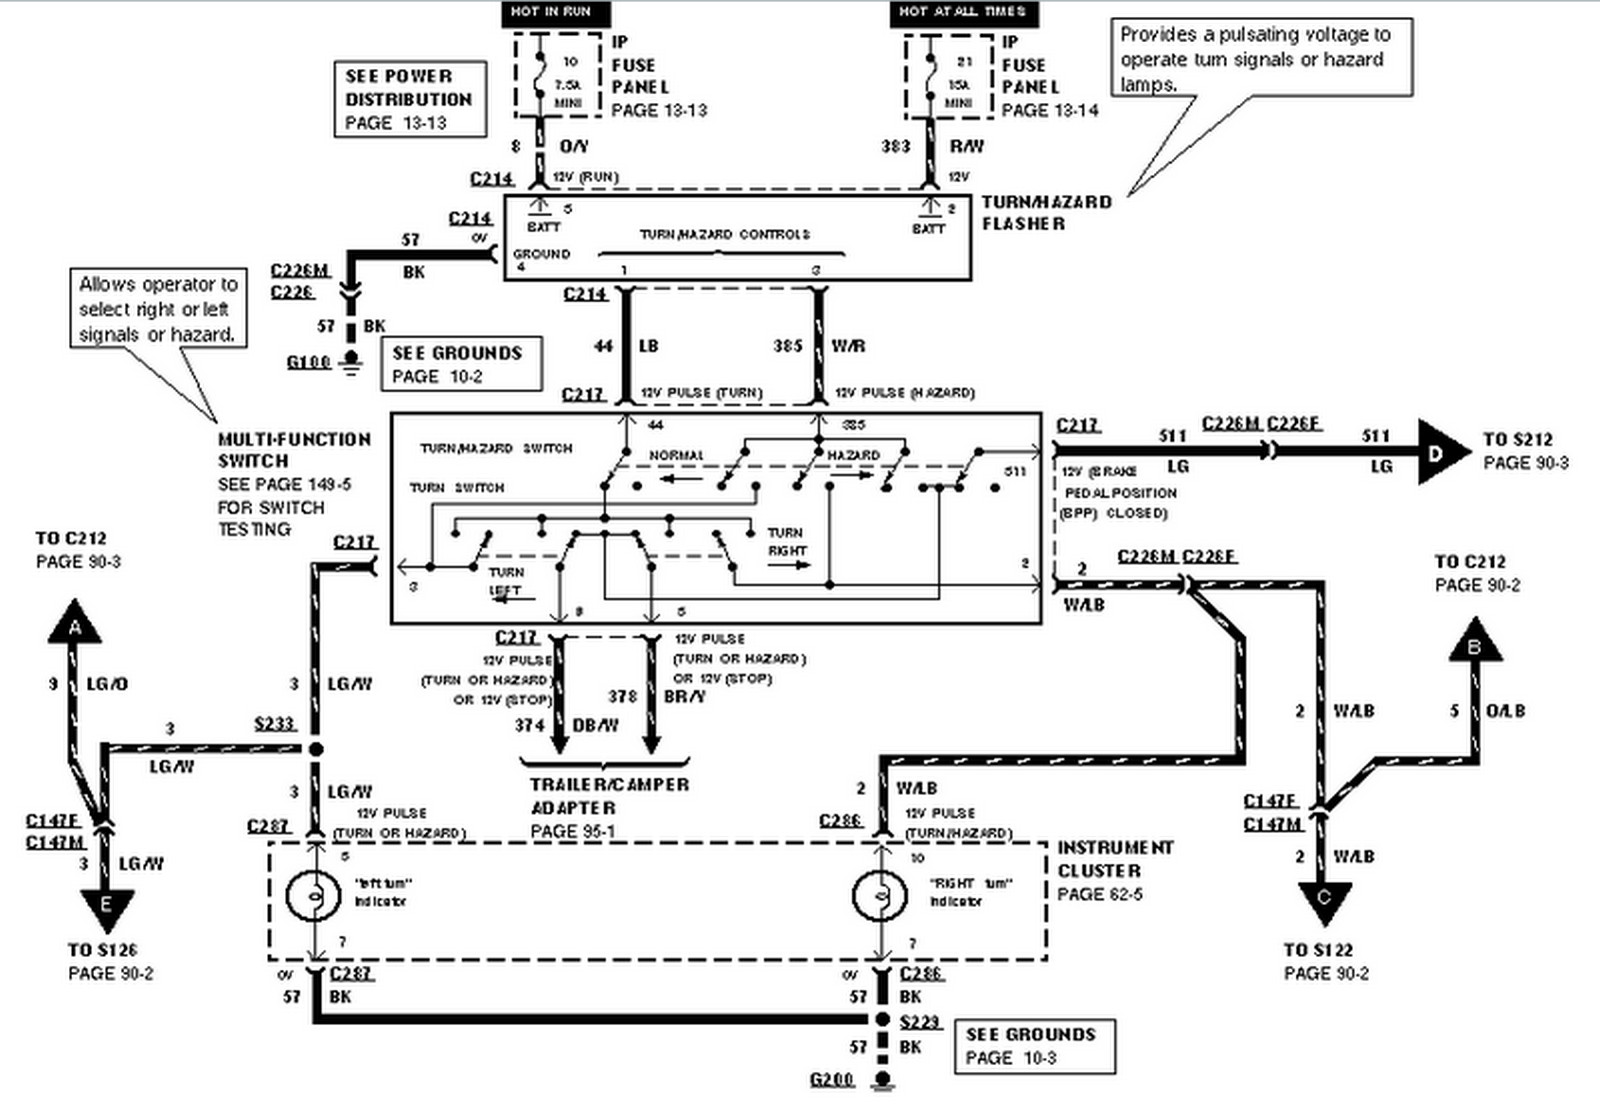 wrg 7265] 2002 ford mustang fuel pump wiring diagramt1998 explorer fog  light wiring diagram wiring